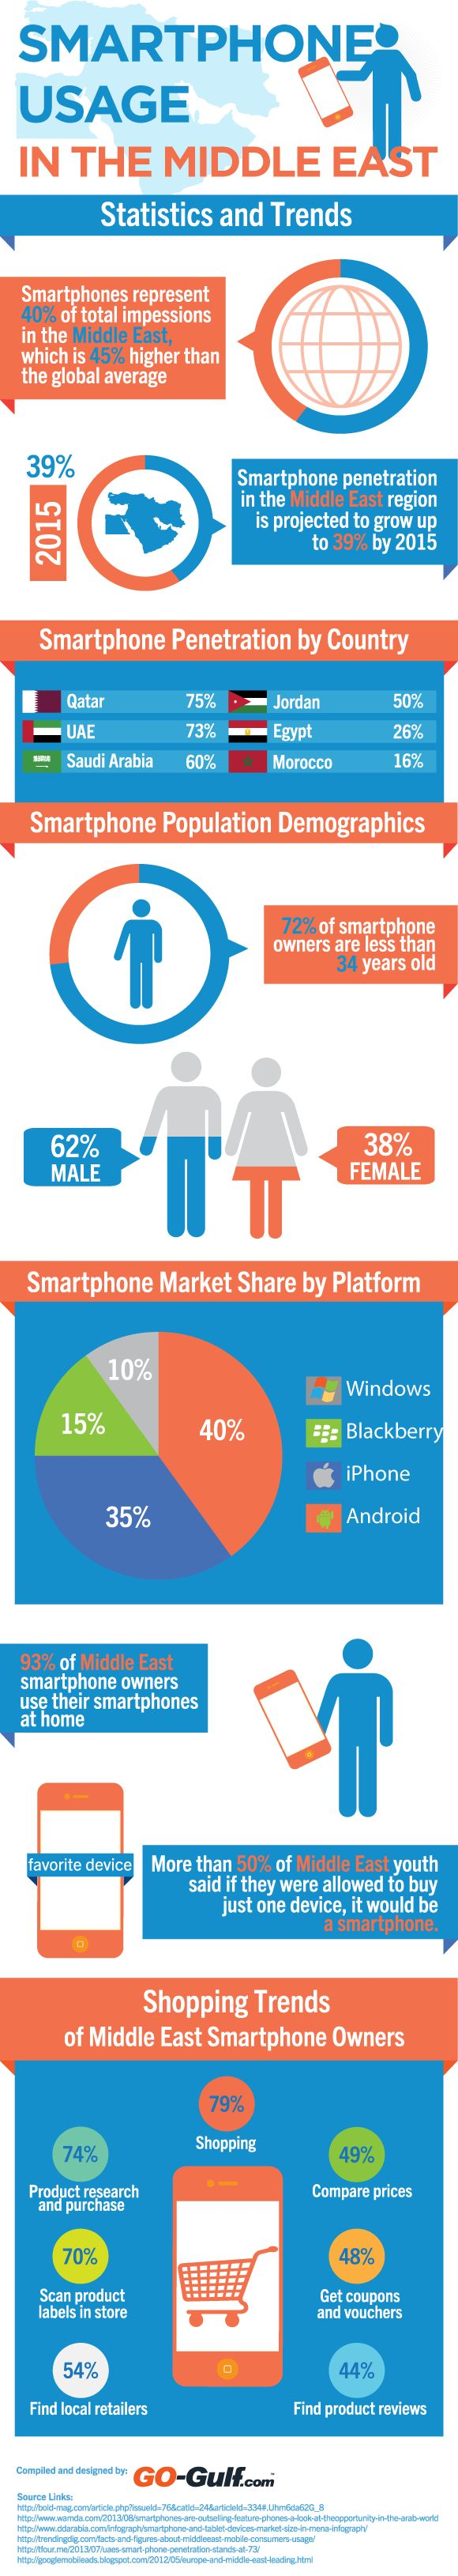 Smartphone Usage In The Middle East– Statistics And Trends [Infographic]